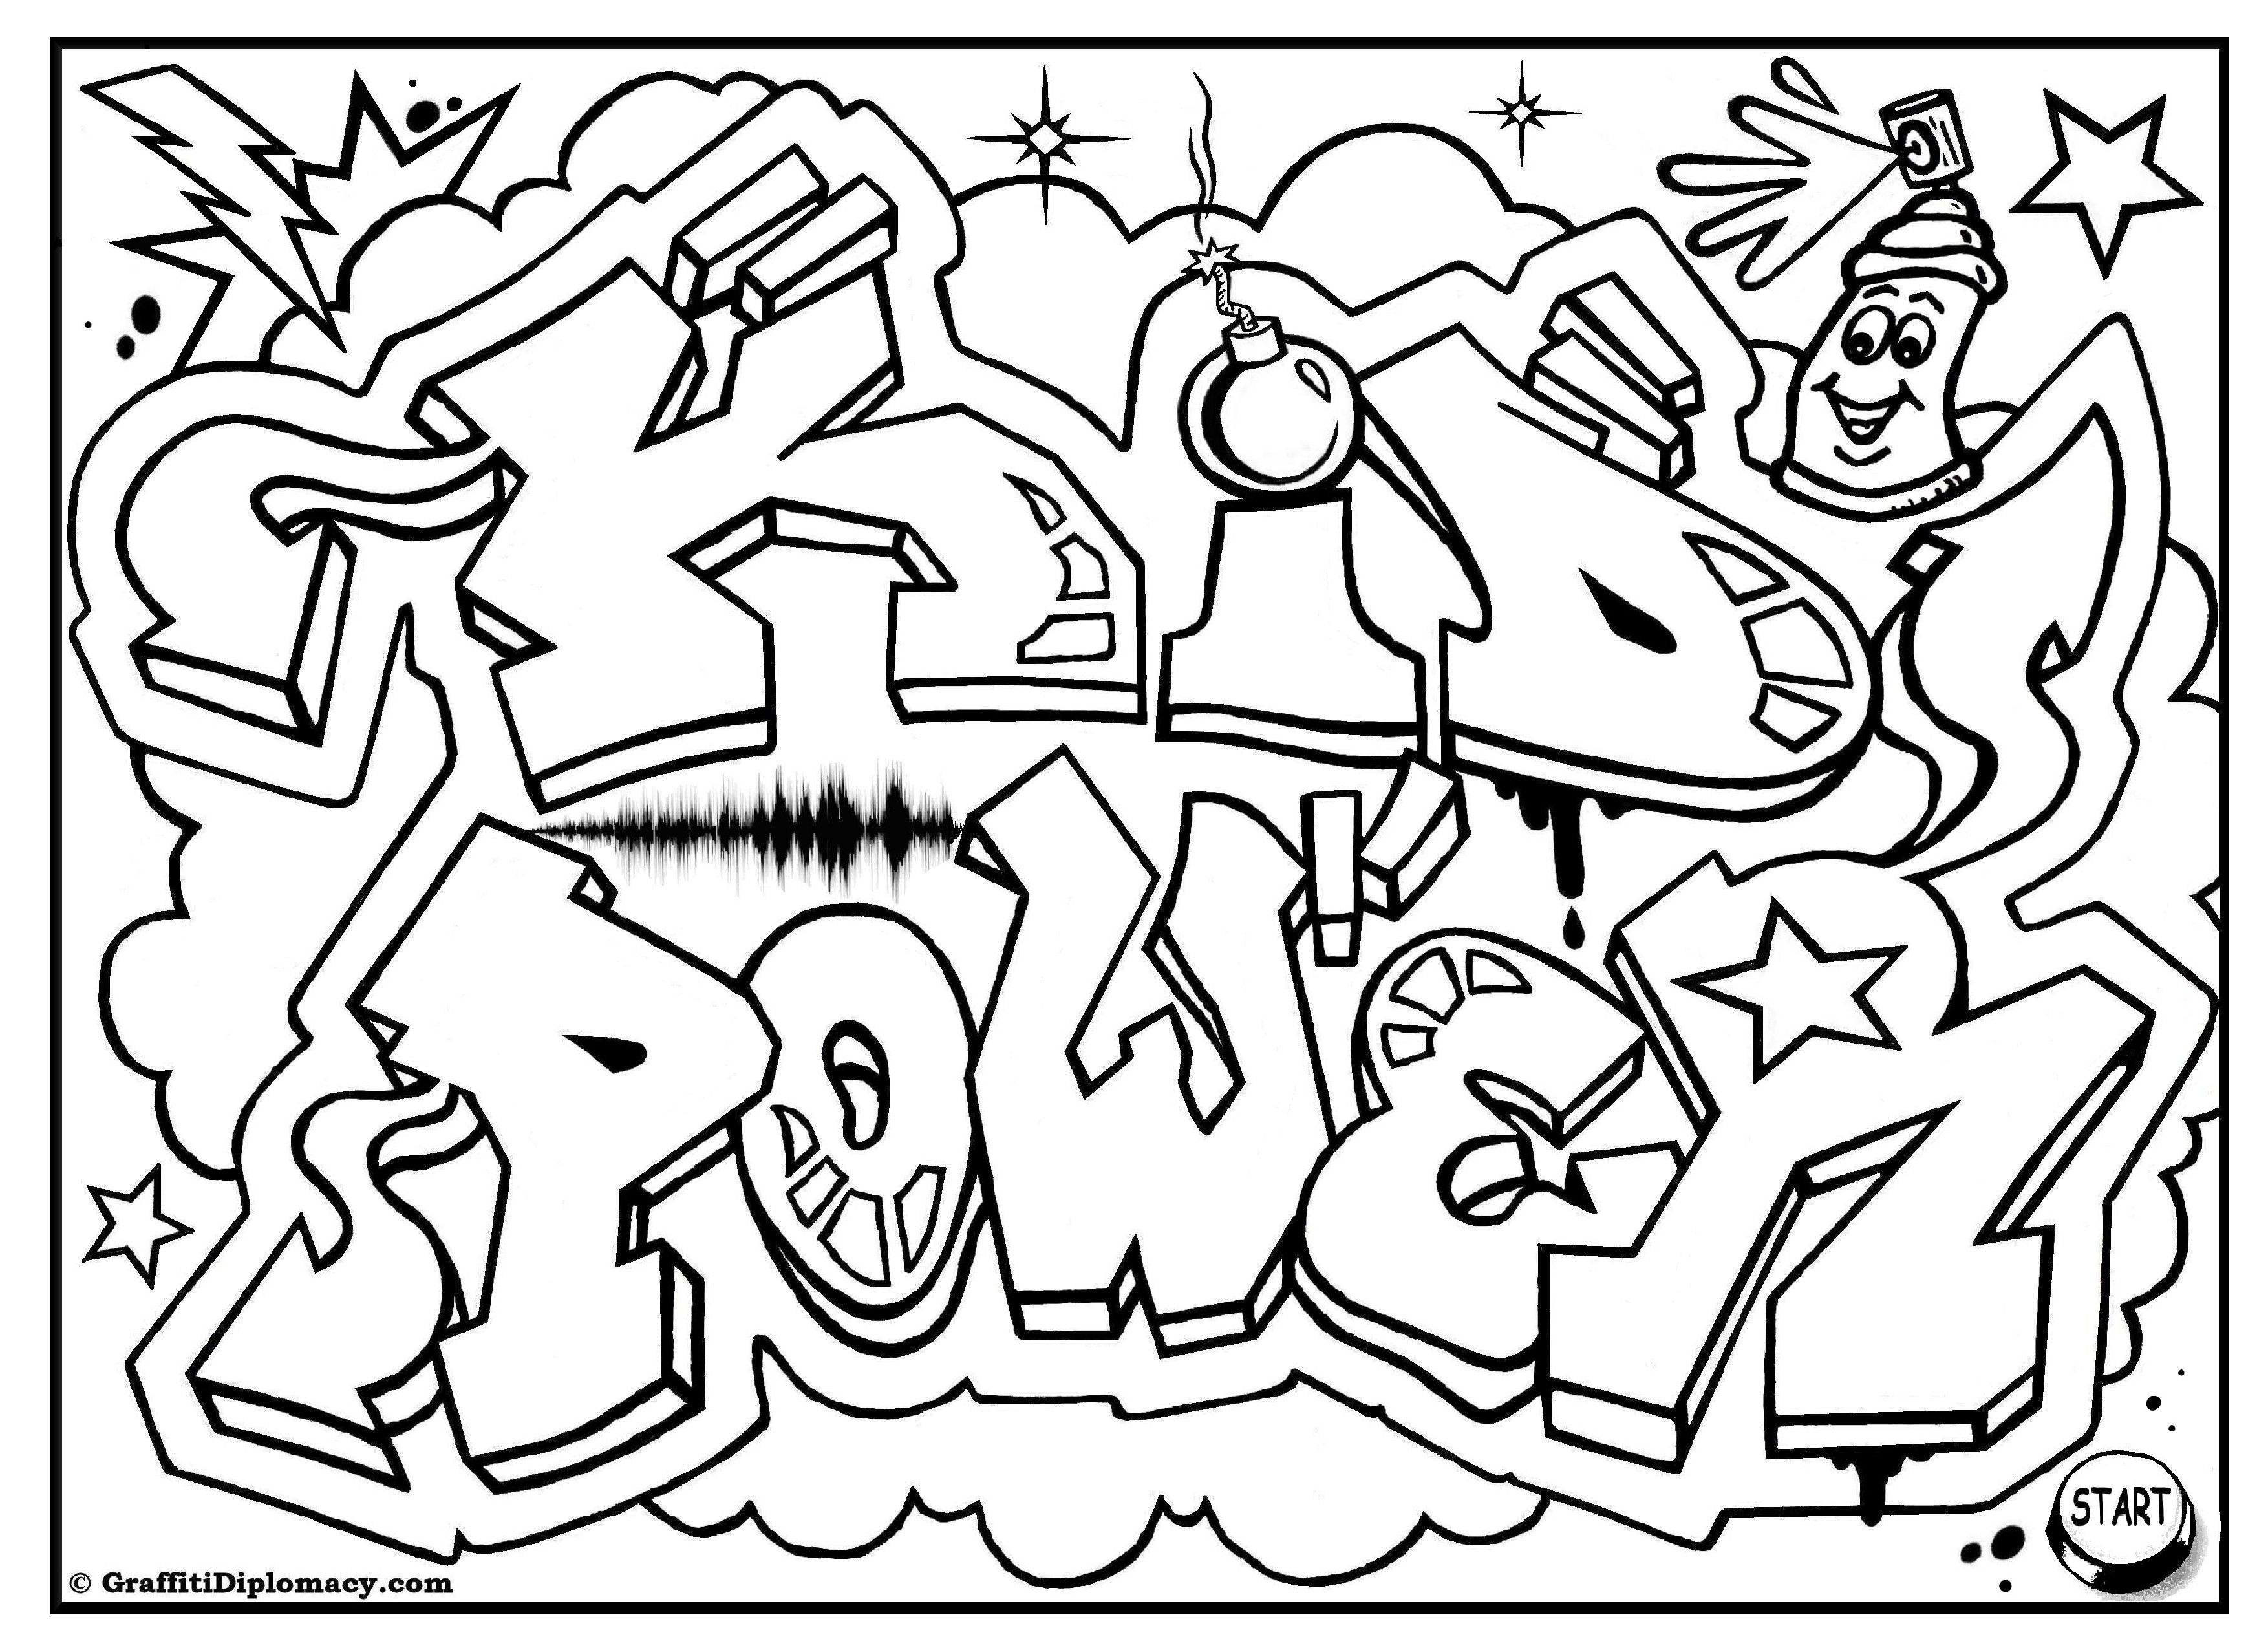 Free Printable, Coloring Pages For Kids Rooms | Coloring The